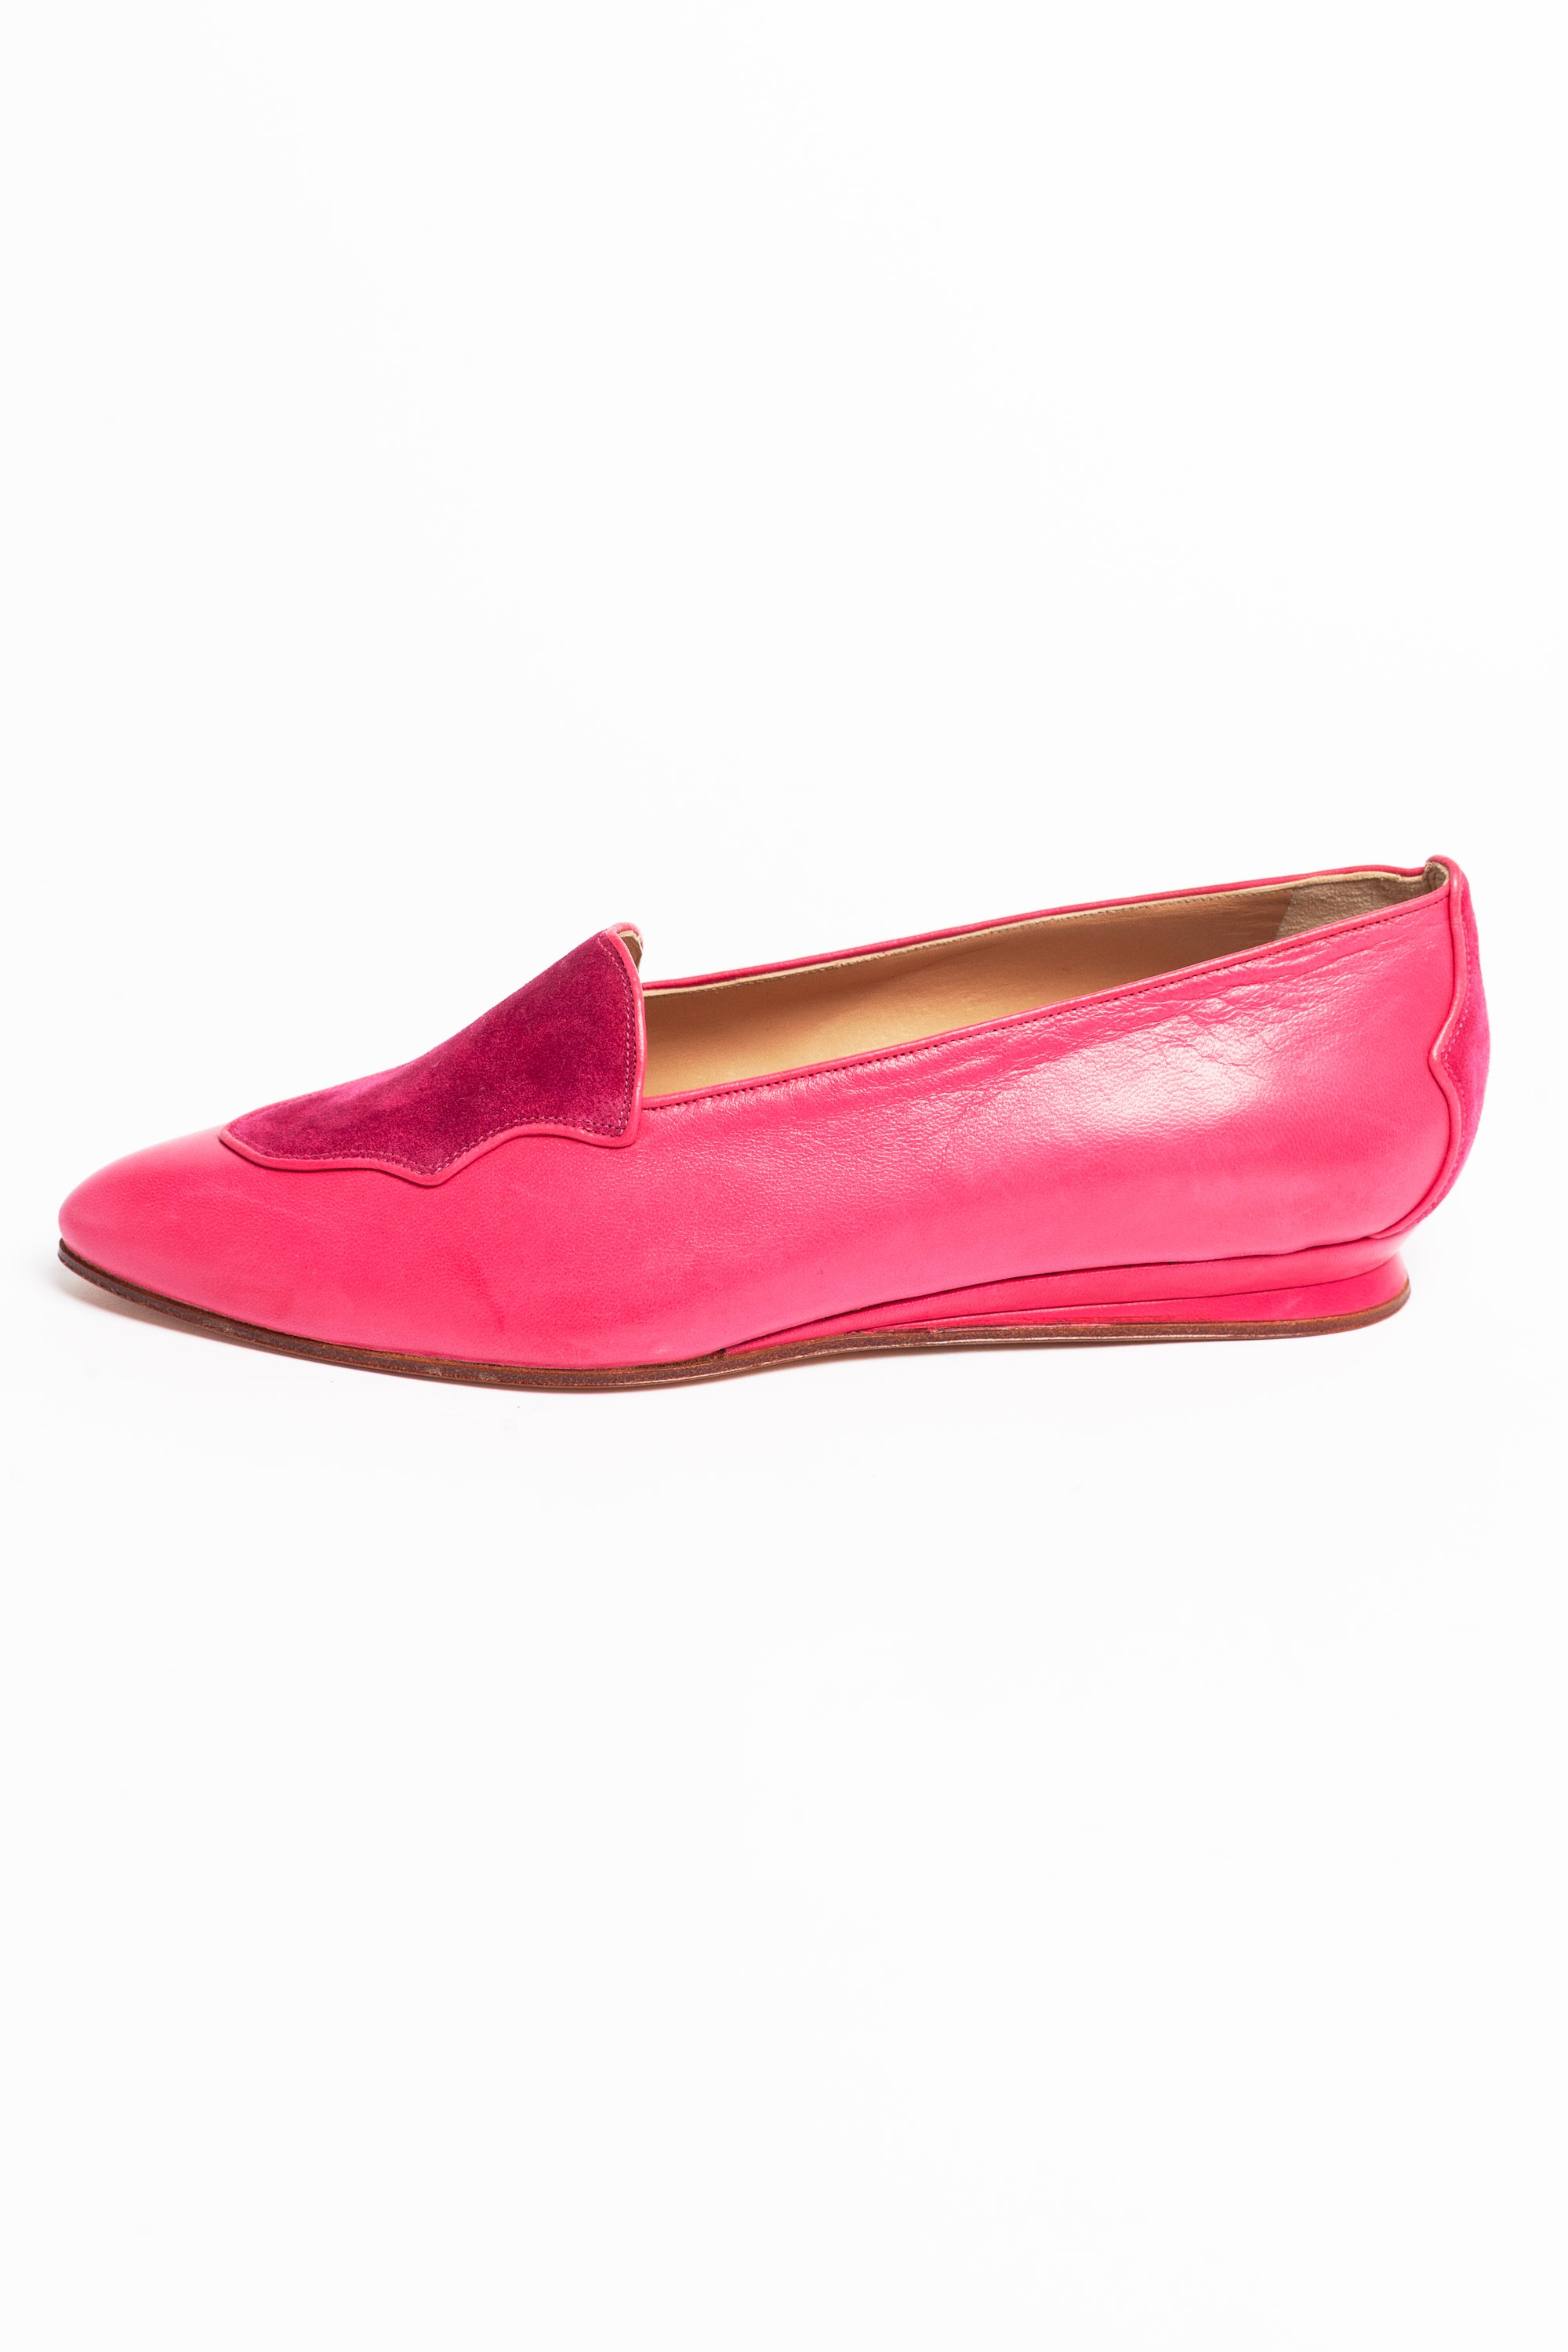 Maud Frizon <br> 1980's leather & suede pointed toe loafers